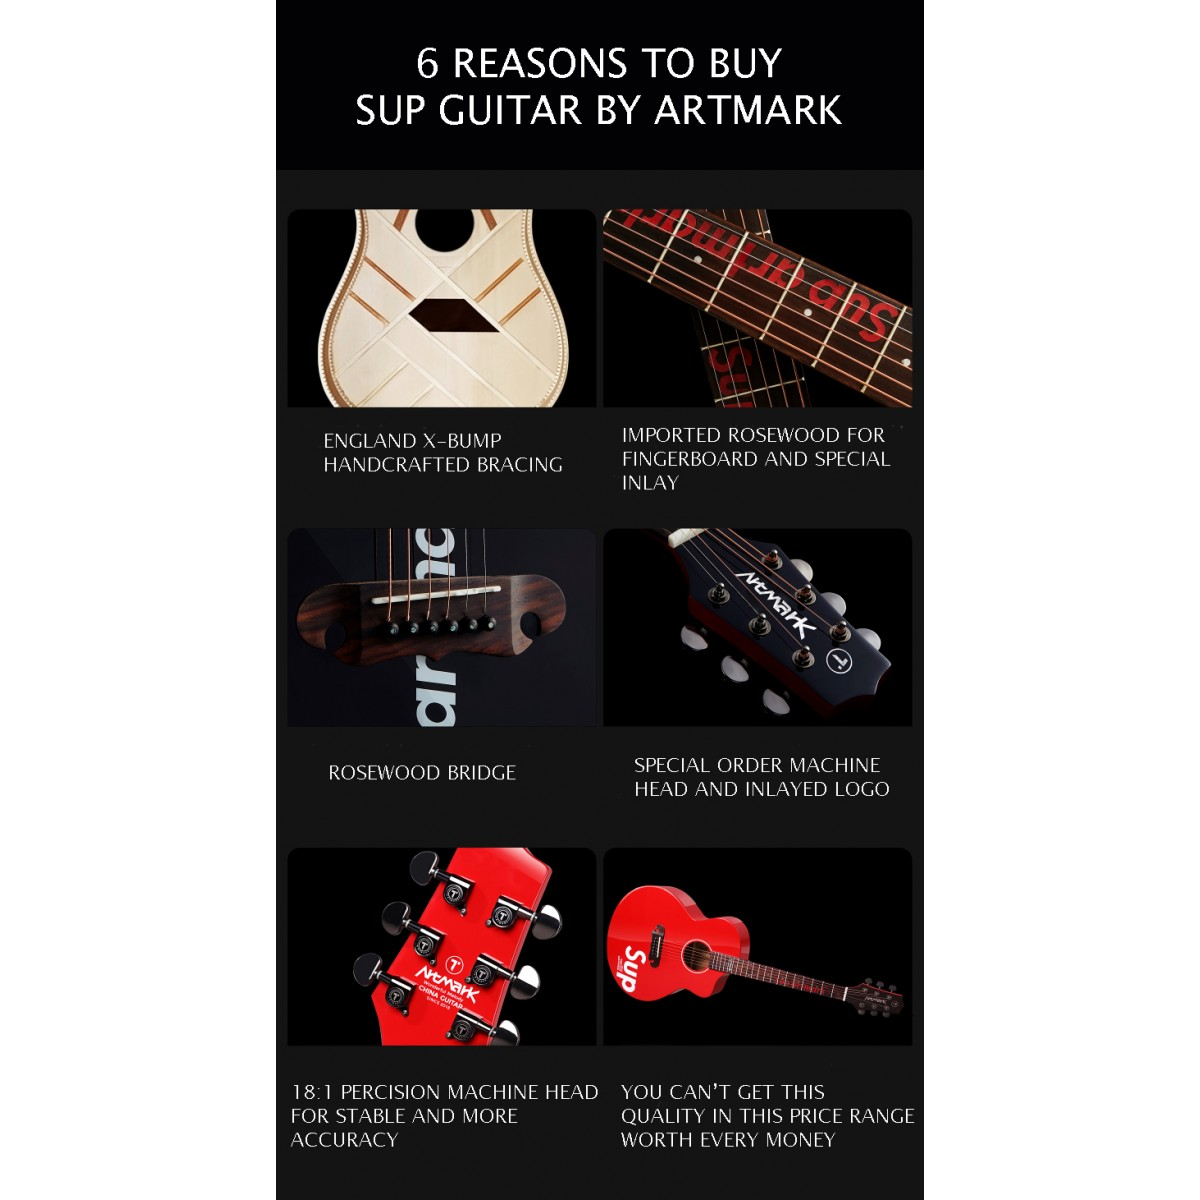 Supreme Acoustic Guitar - Best Beginner Guitar by Artmark comes with GigBag